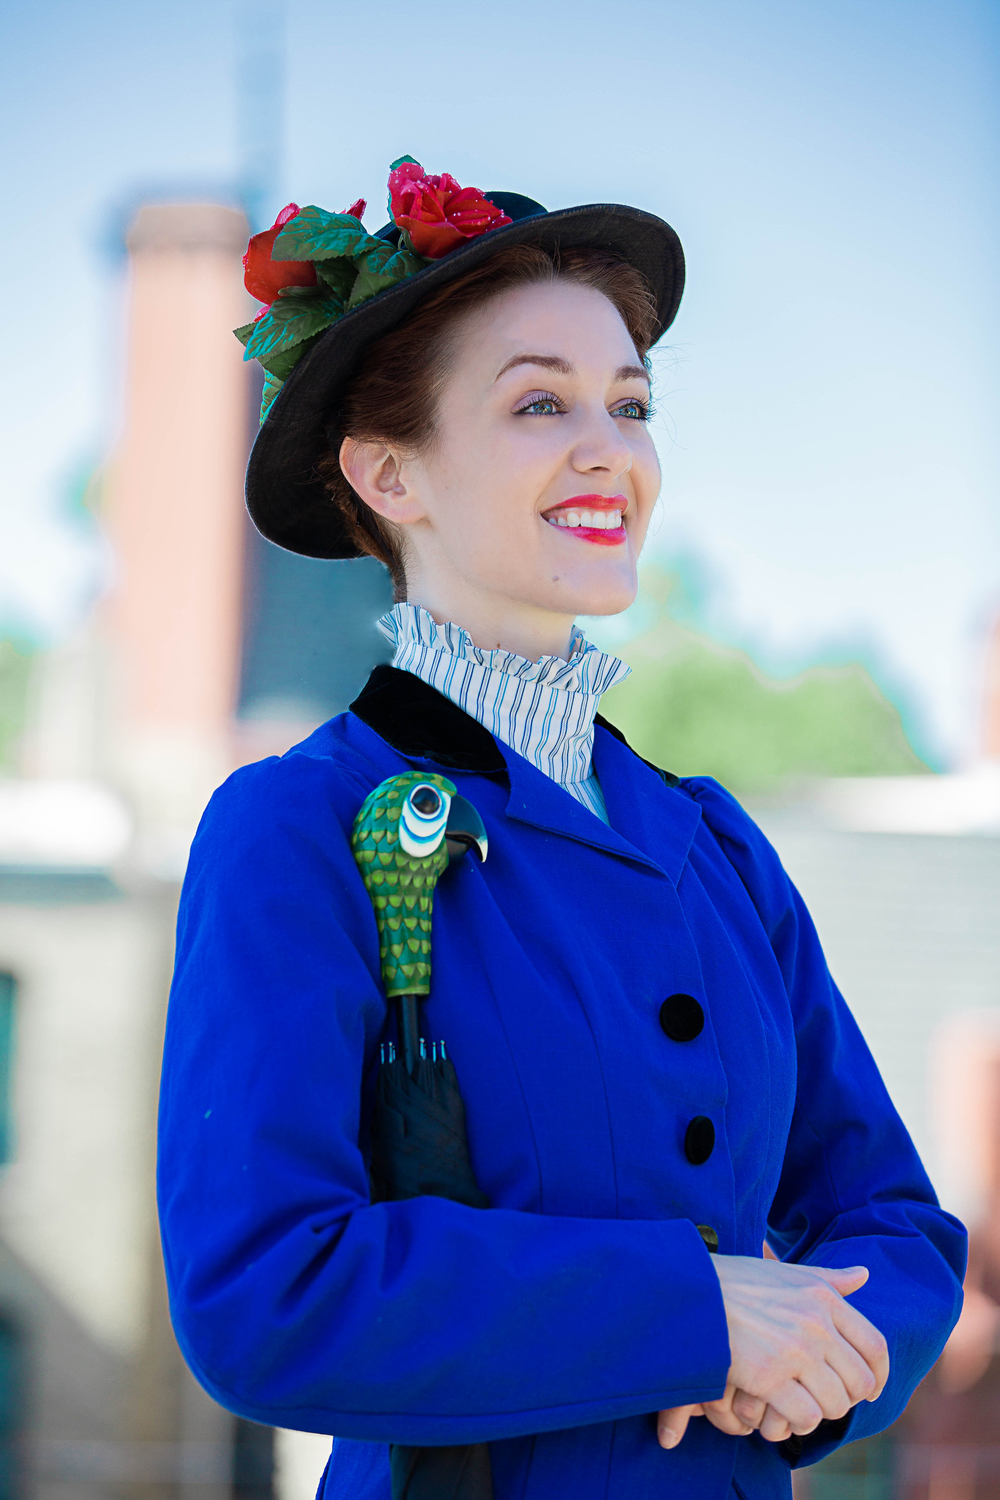 Becca Hart as Mary Poppins. Credit: Devon Cox